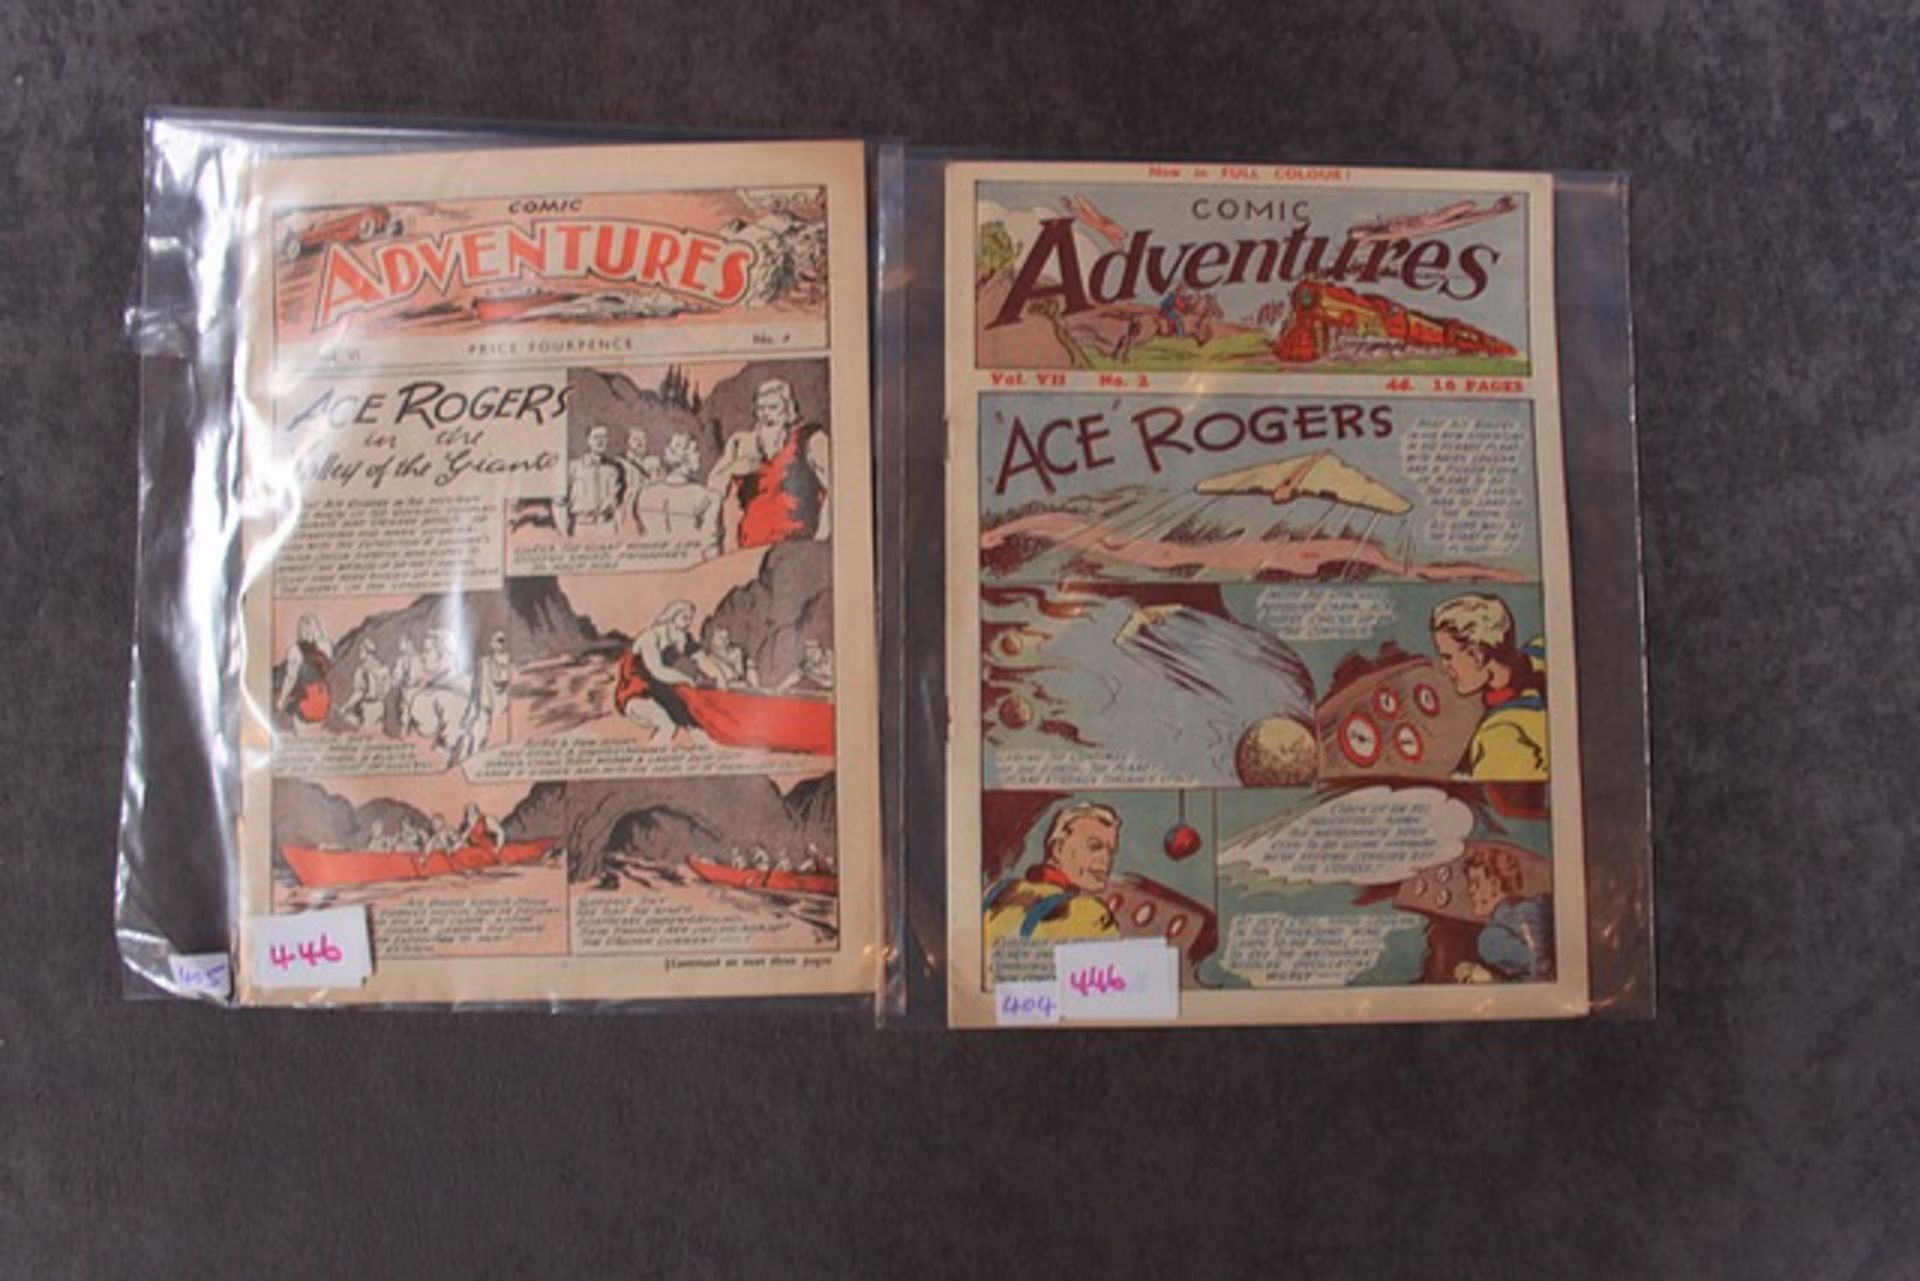 Lot 446 - 2 x comic issues Comic Adventures Soloway, 1940 Series #V2/#2 Ace Rogers and Comic Adventures